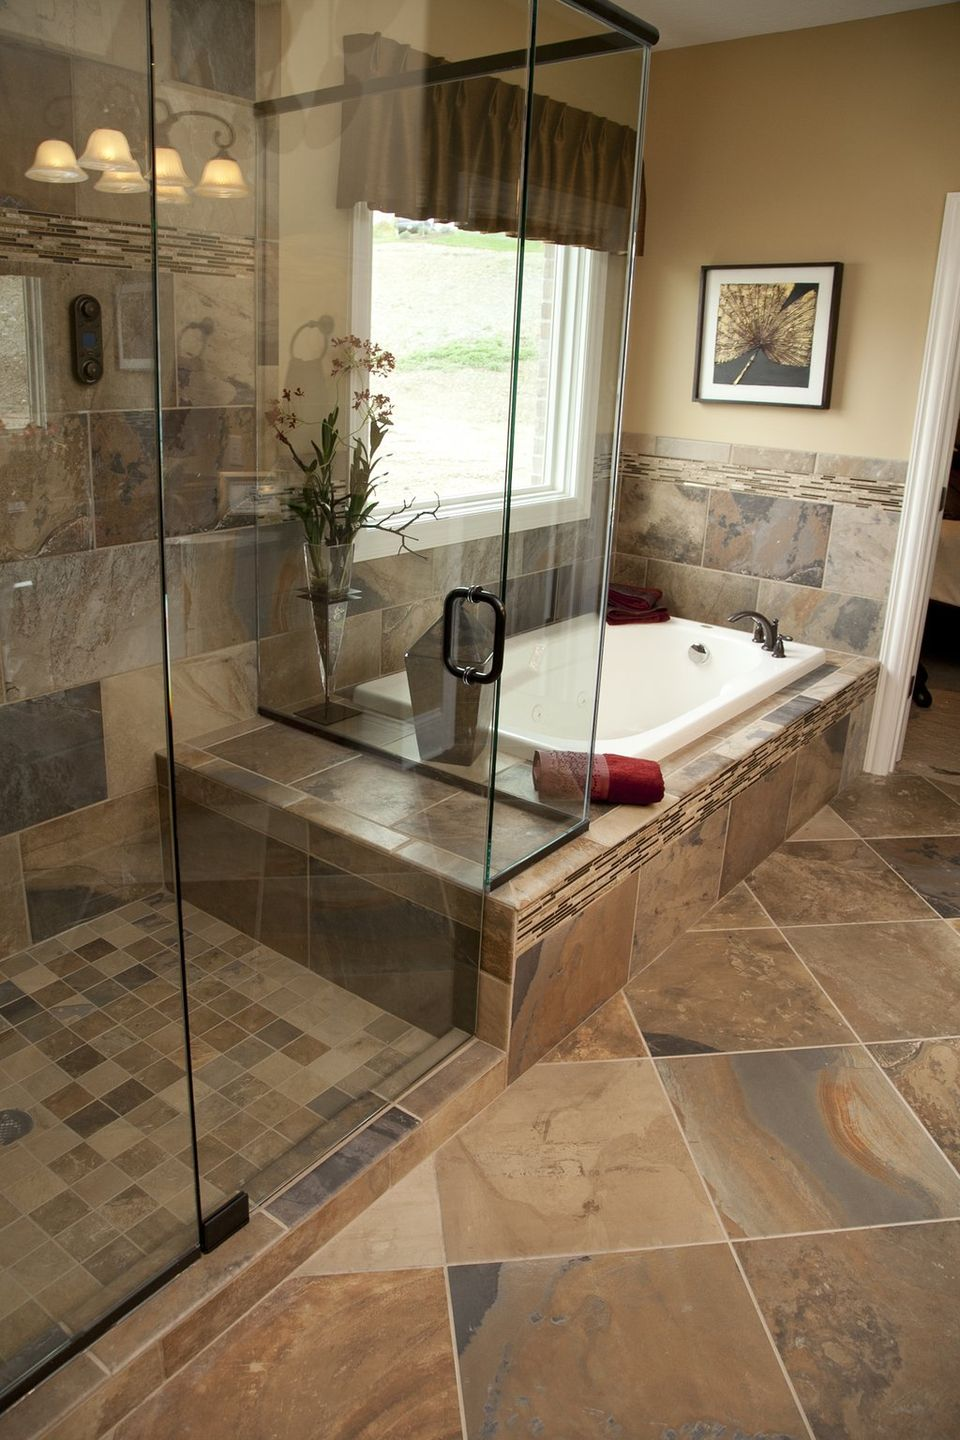 33 stunning pictures and ideas of natural stone bathroom floor tiles. Black Bedroom Furniture Sets. Home Design Ideas